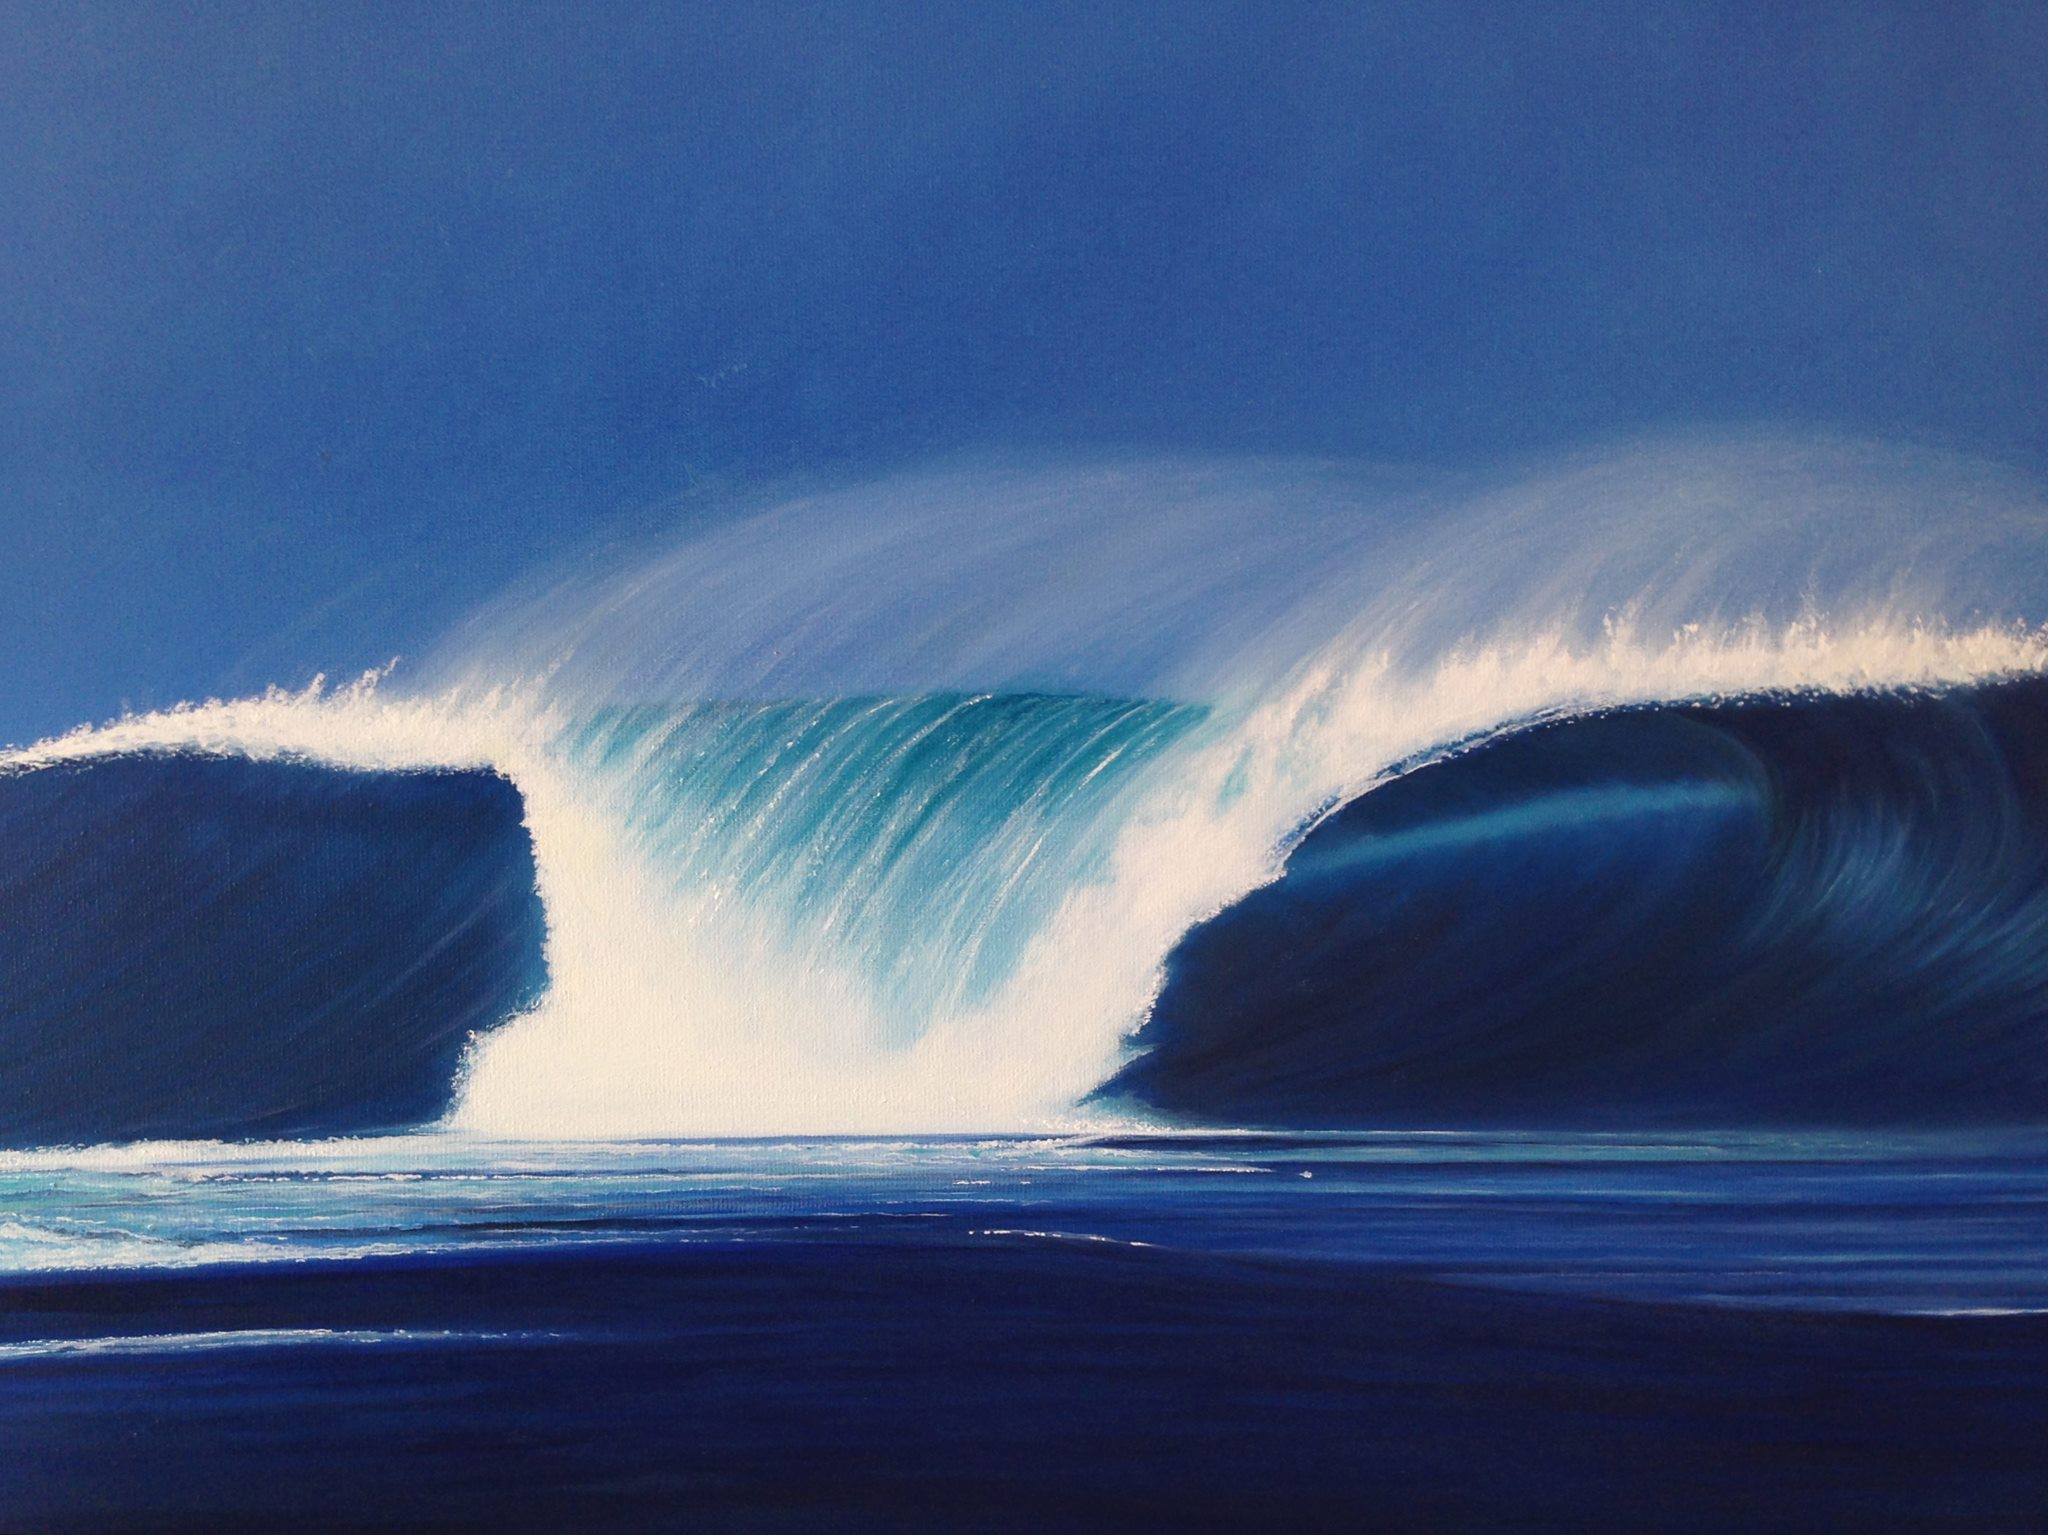 Wave. Oil on canvas. Photo courtesy of Rikki Tollenaere.